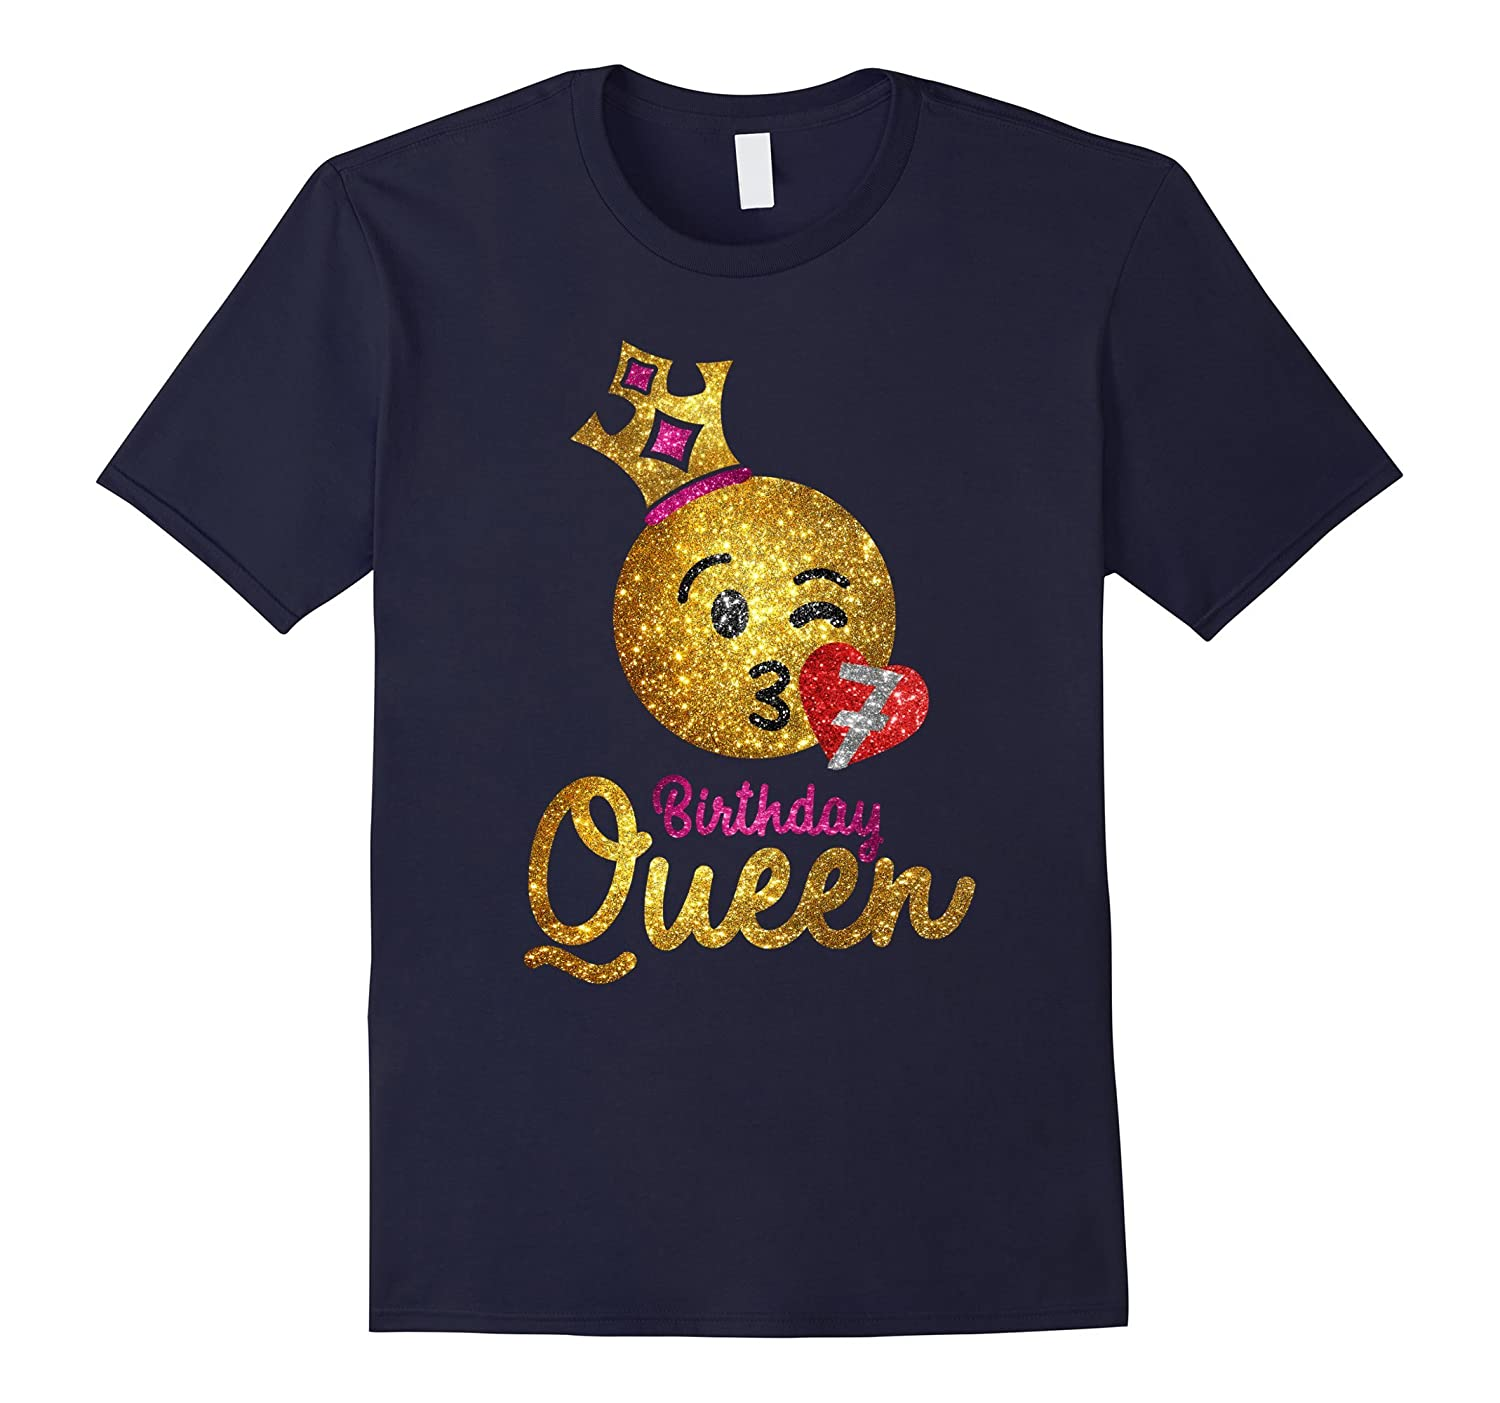 Birthday Queen Emoji Shirt - Girls 7th Birthday Shirt-FL